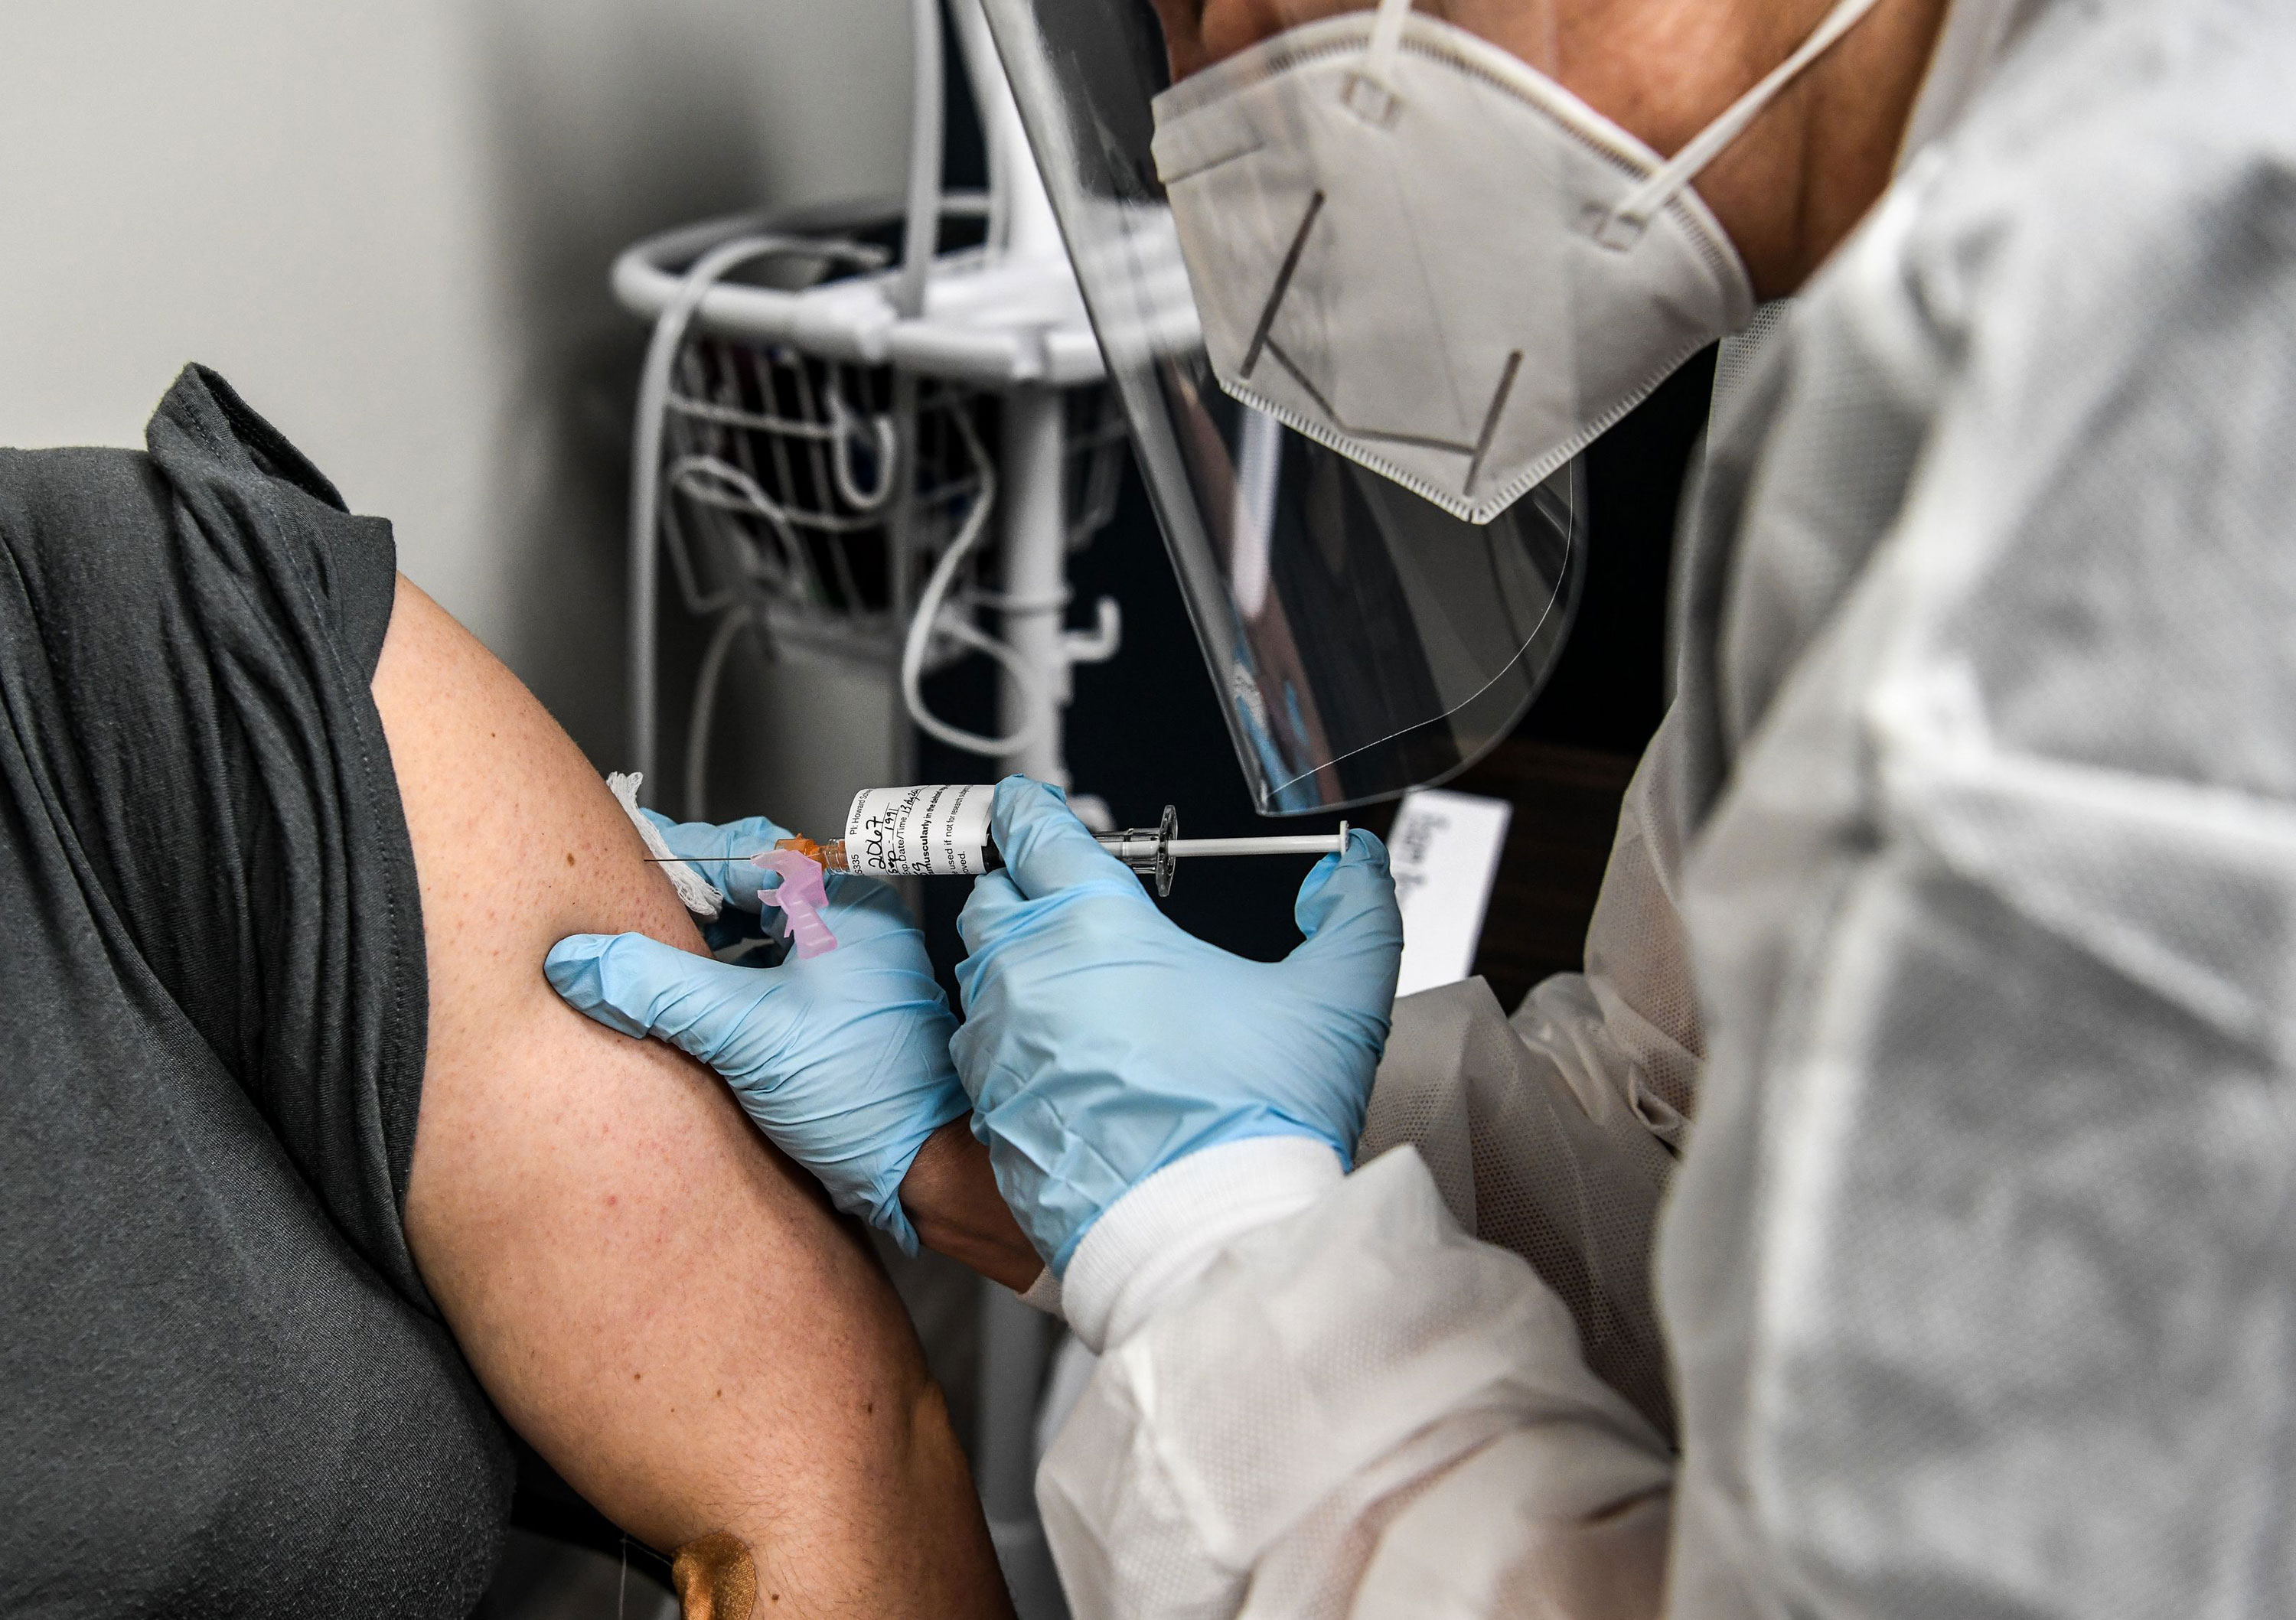 A patient receives a coronavirus vaccine as part of a study at the Research Centers of America on August 13 in Hollywood, Florida.